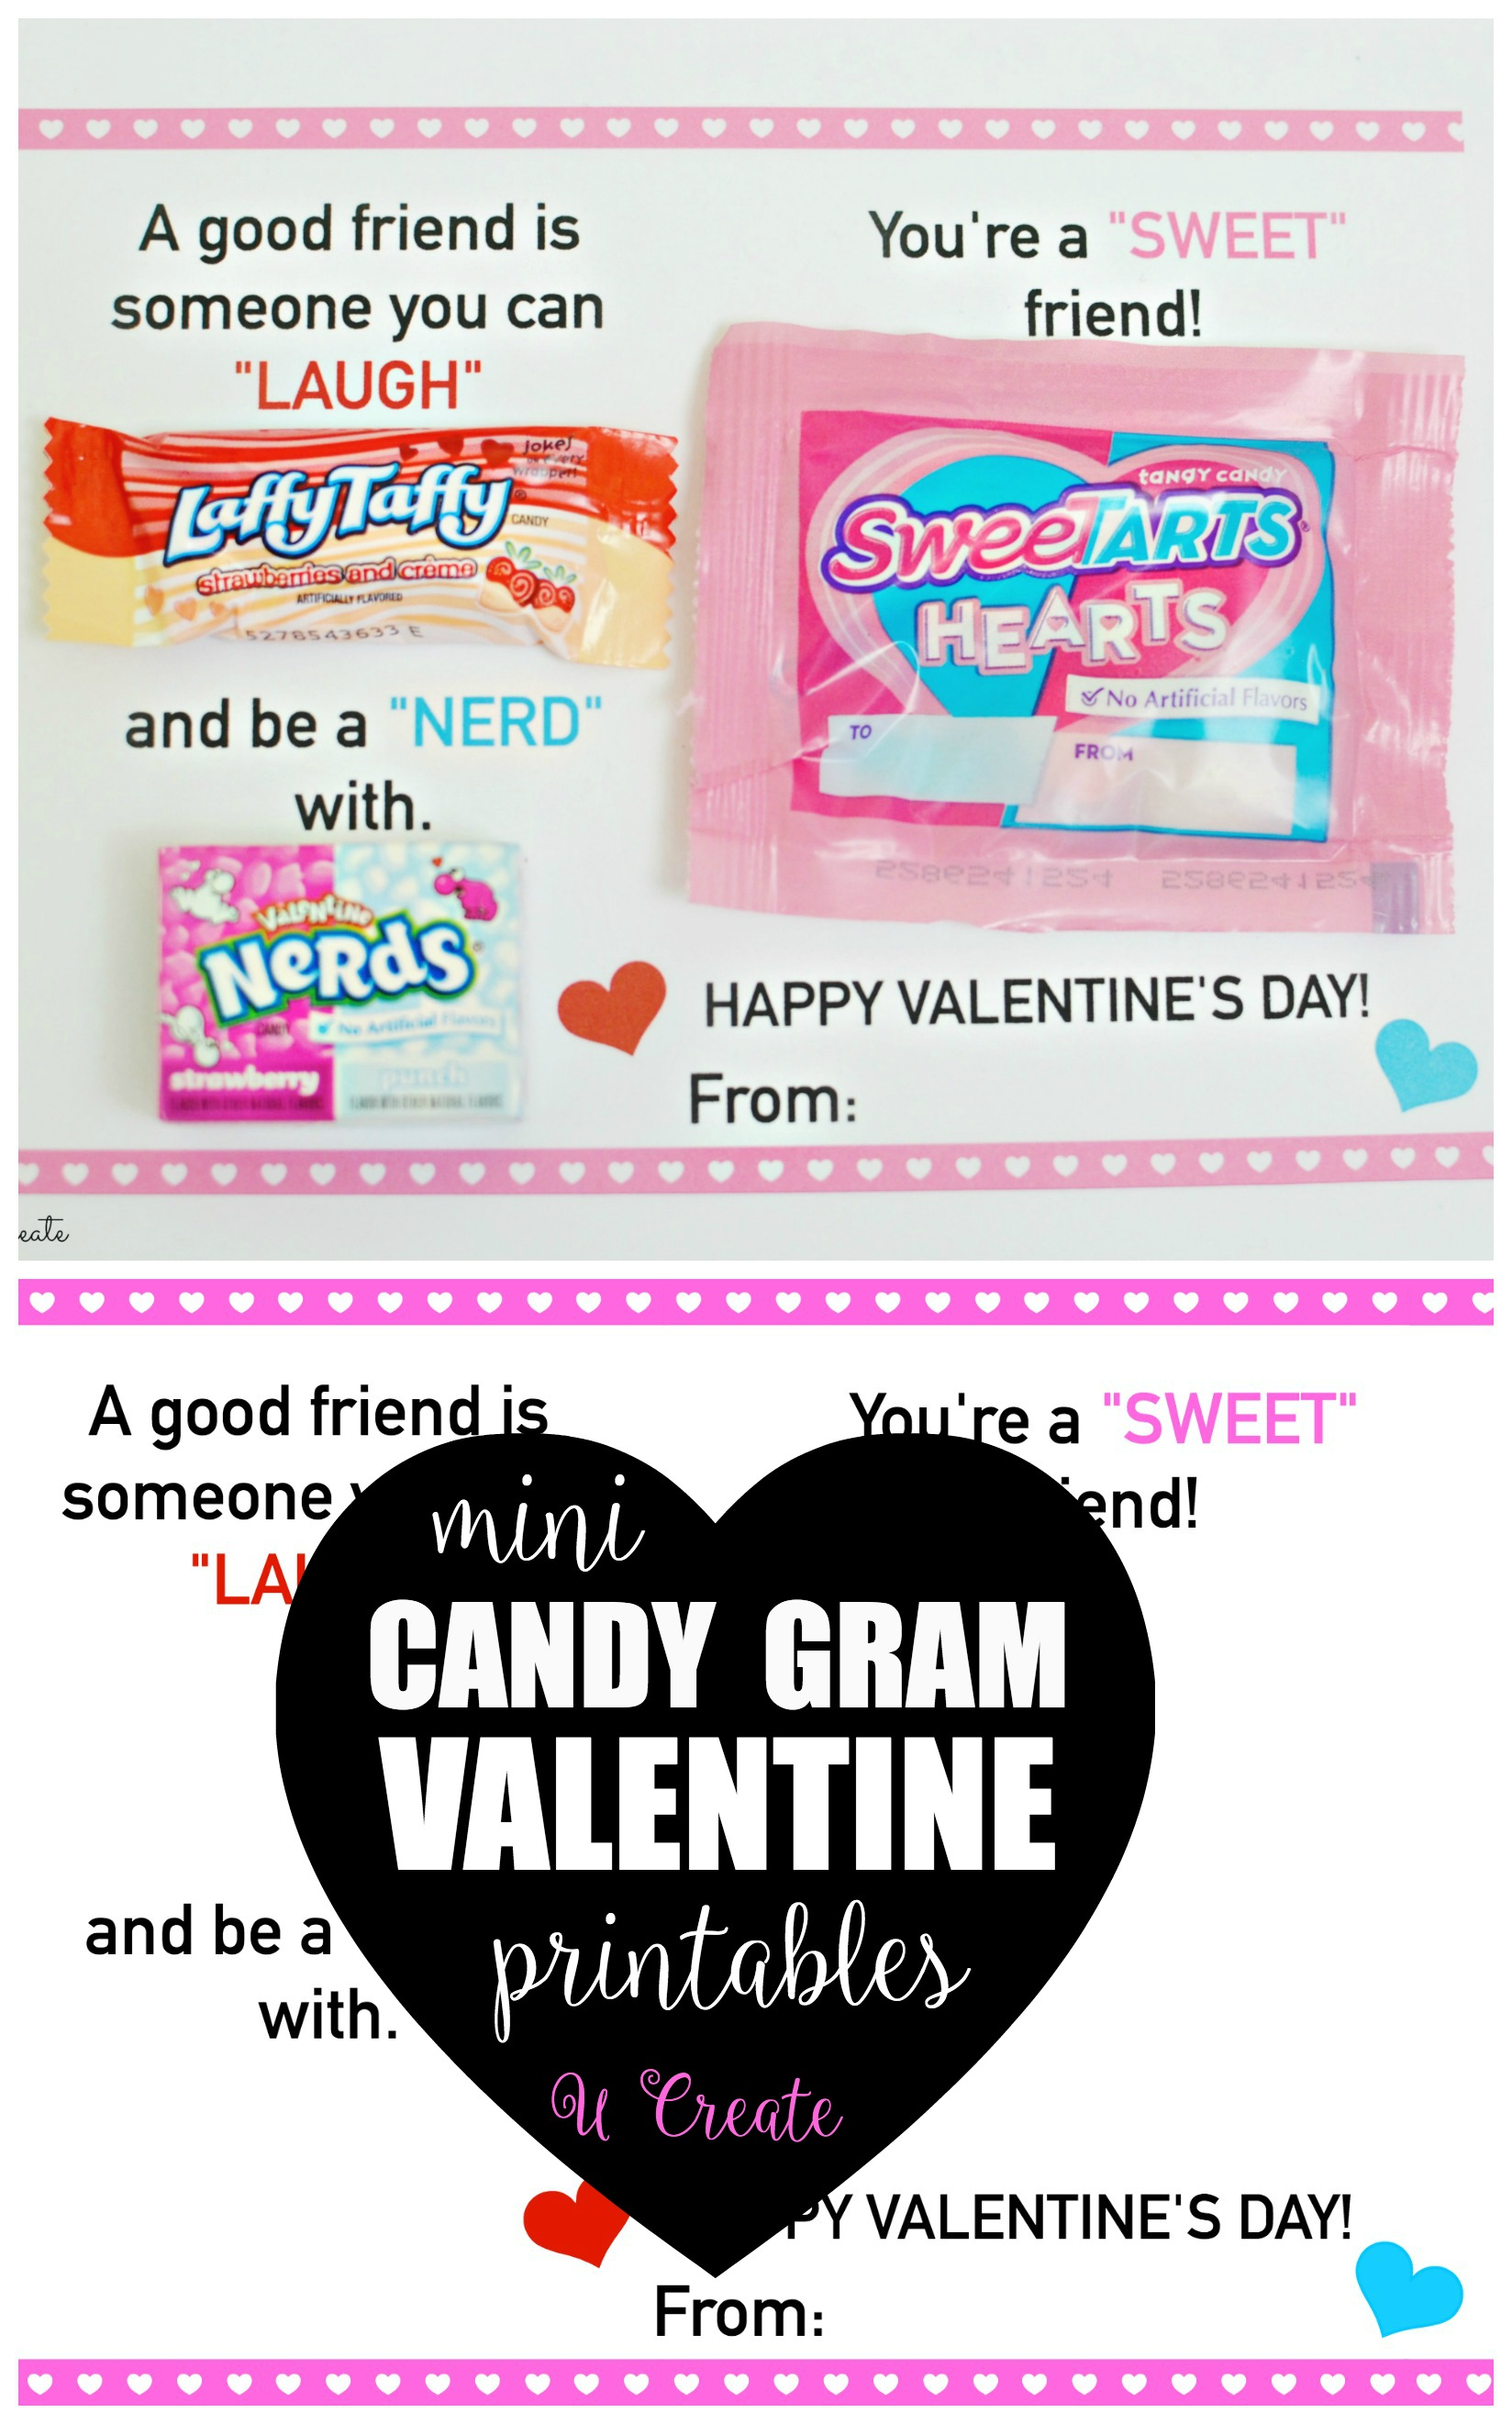 Mini Candy Gram Valentine Printables by U Create